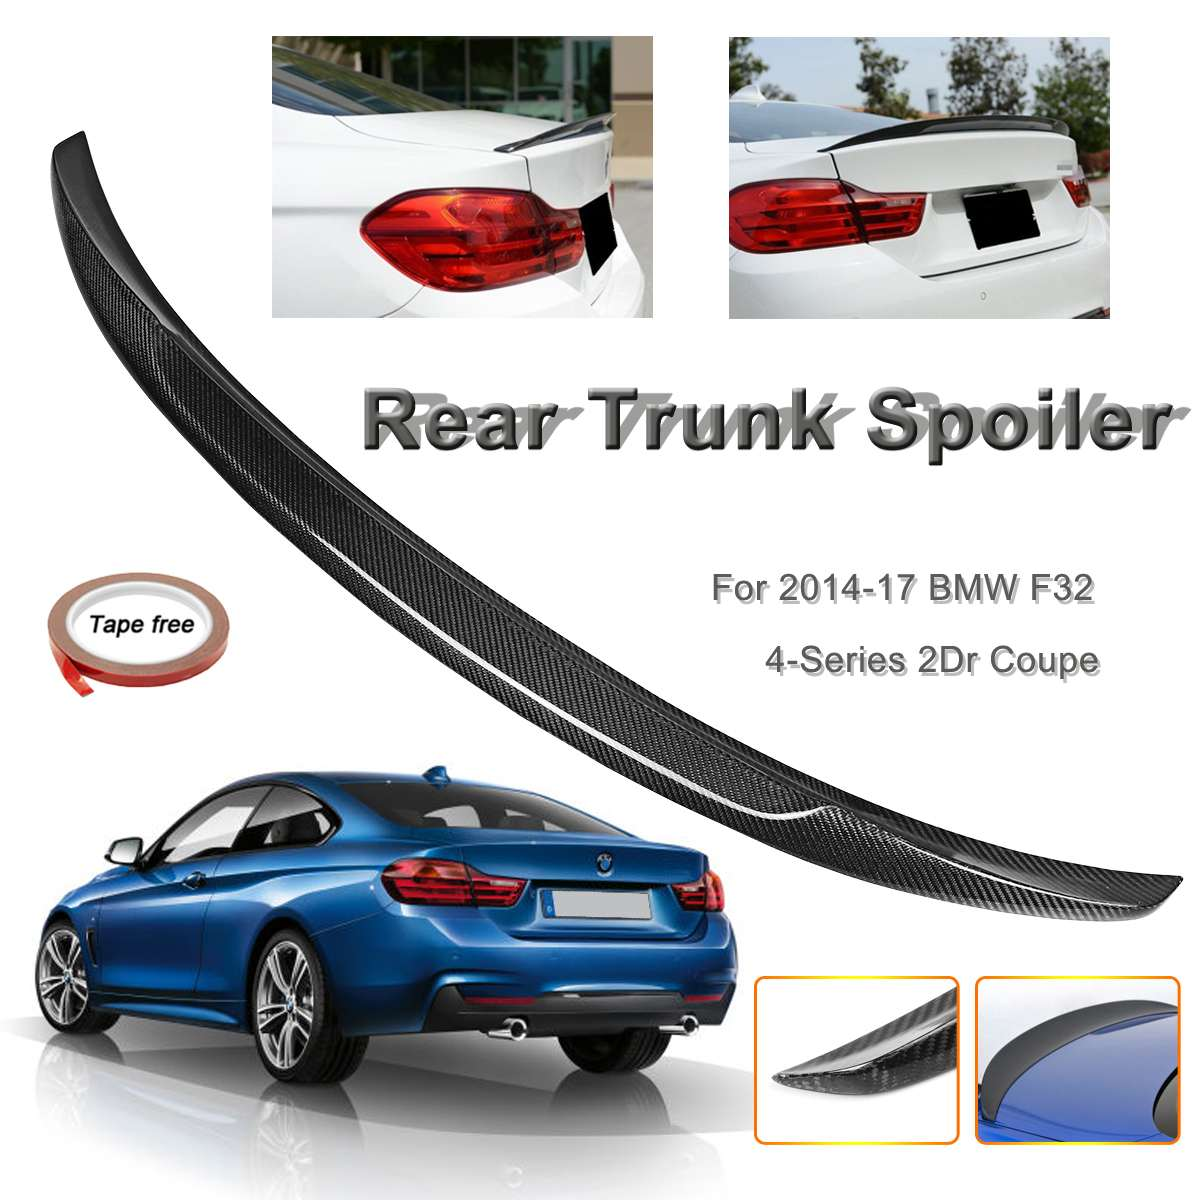 Full Real Carbon Fiber Material Rear Trunk Spoiler Fits for BMW F32 4-Series 2 Doors for Coupe 2014-2017 P Style WingsFull Real Carbon Fiber Material Rear Trunk Spoiler Fits for BMW F32 4-Series 2 Doors for Coupe 2014-2017 P Style Wings